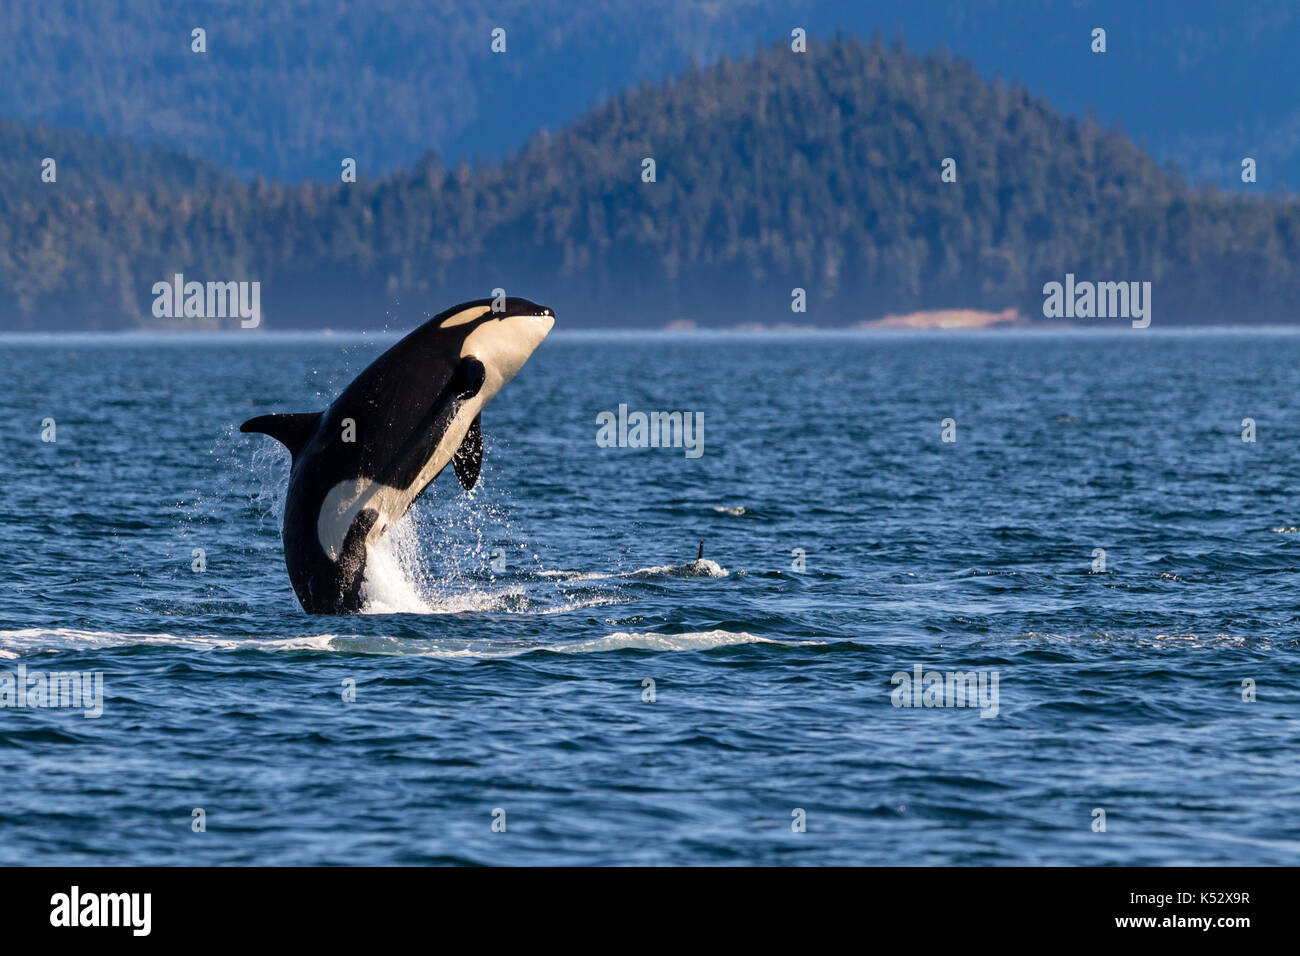 Northern resident killer whale breaching in front of Swanson Island off Northern Vancouver Island, British Columbia, Canada. - Stock Image